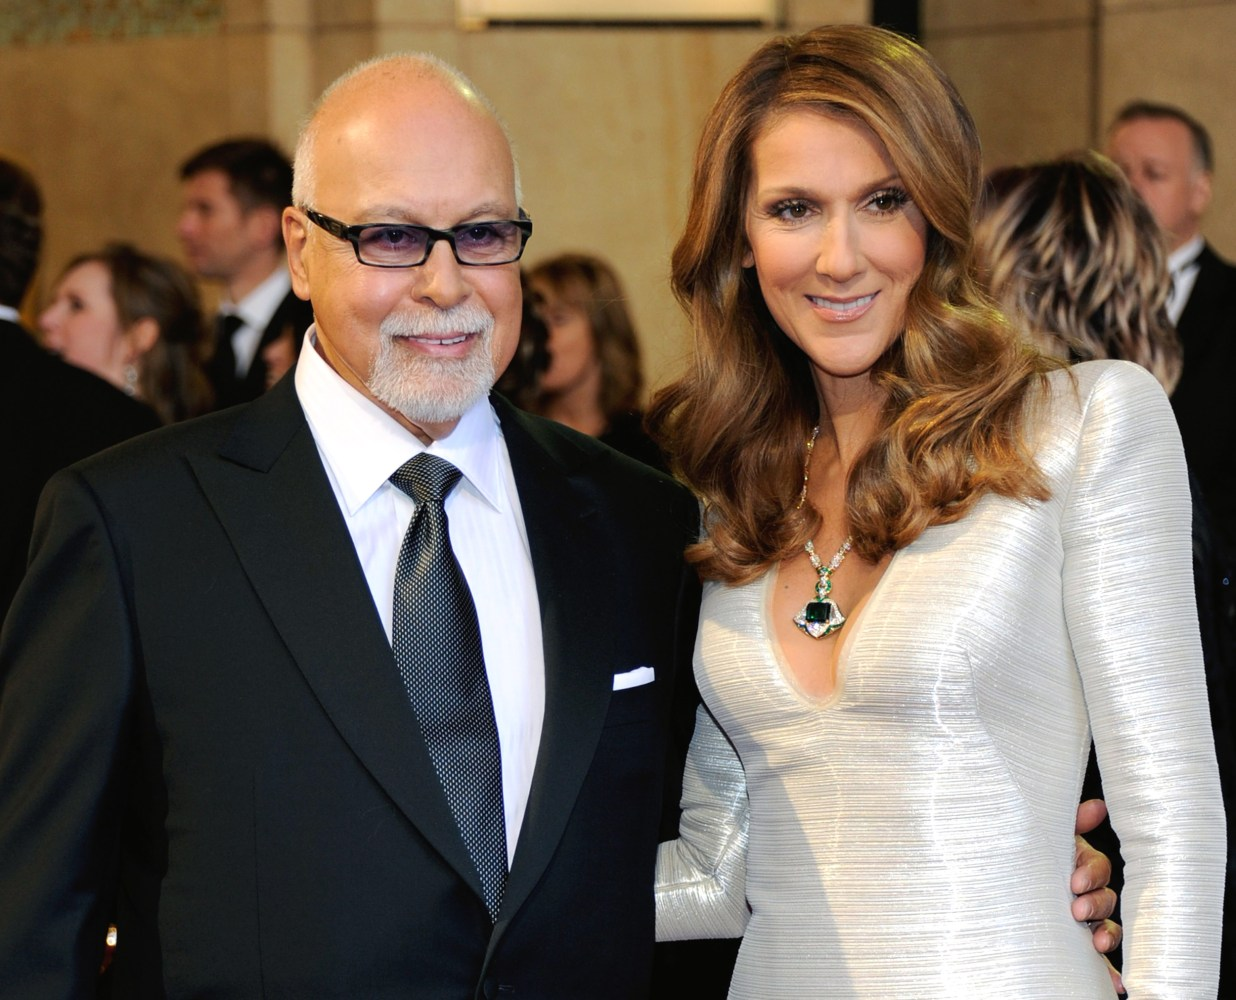 Celine Dion with Husband René Angelil